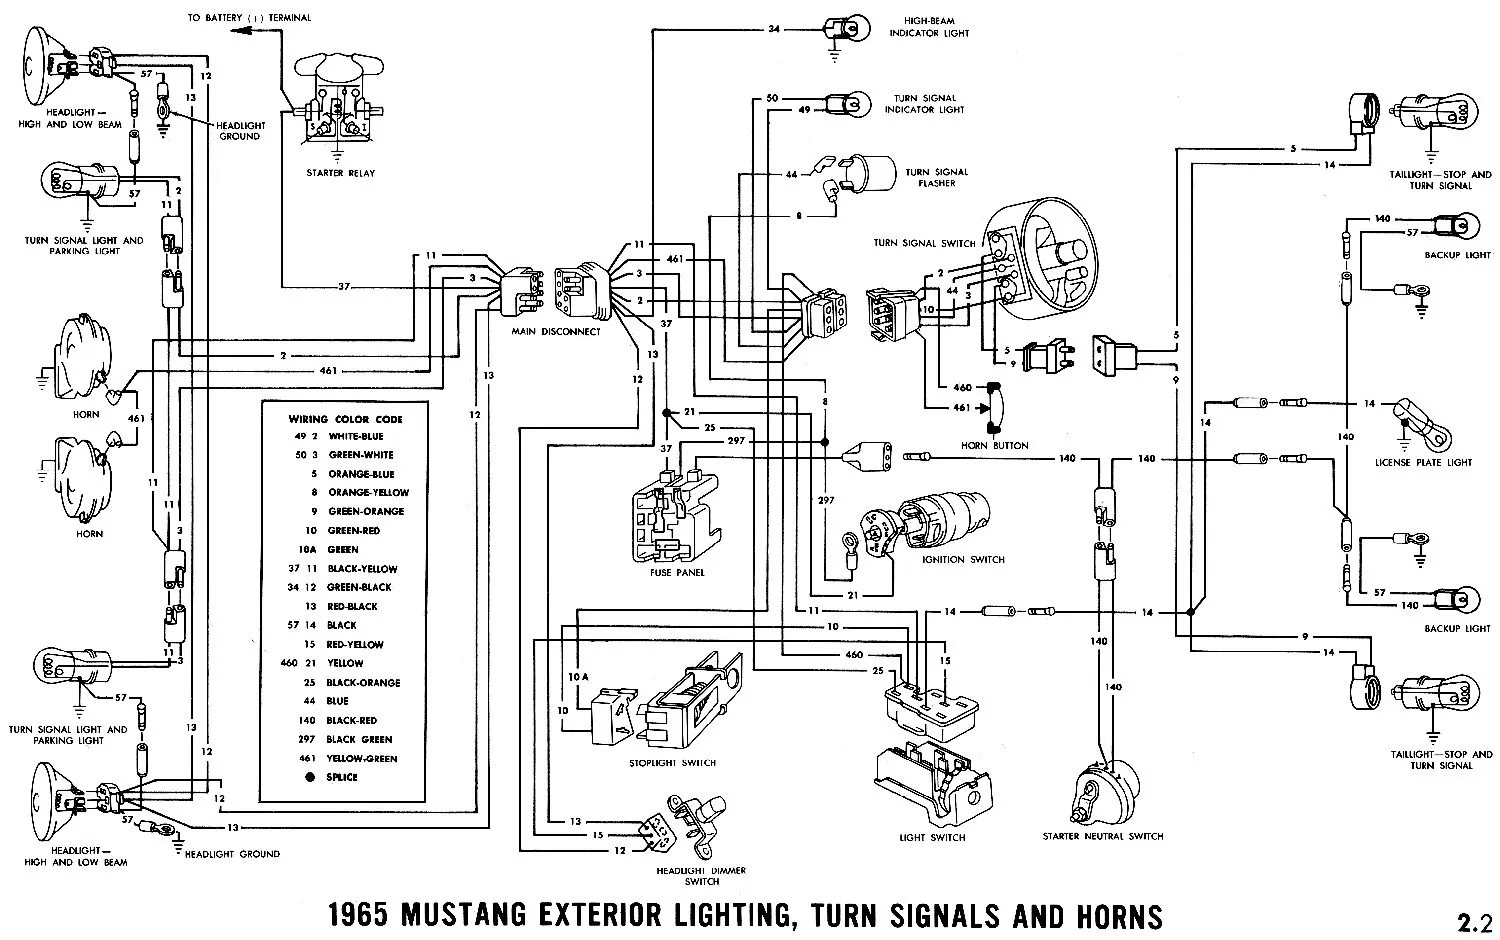 hight resolution of 1965 mustang wiring diagrams average joe restoration rh averagejoerestoration com 1966 ford mustang wiring diagram 1965 mustang fog lamp wiring diagram